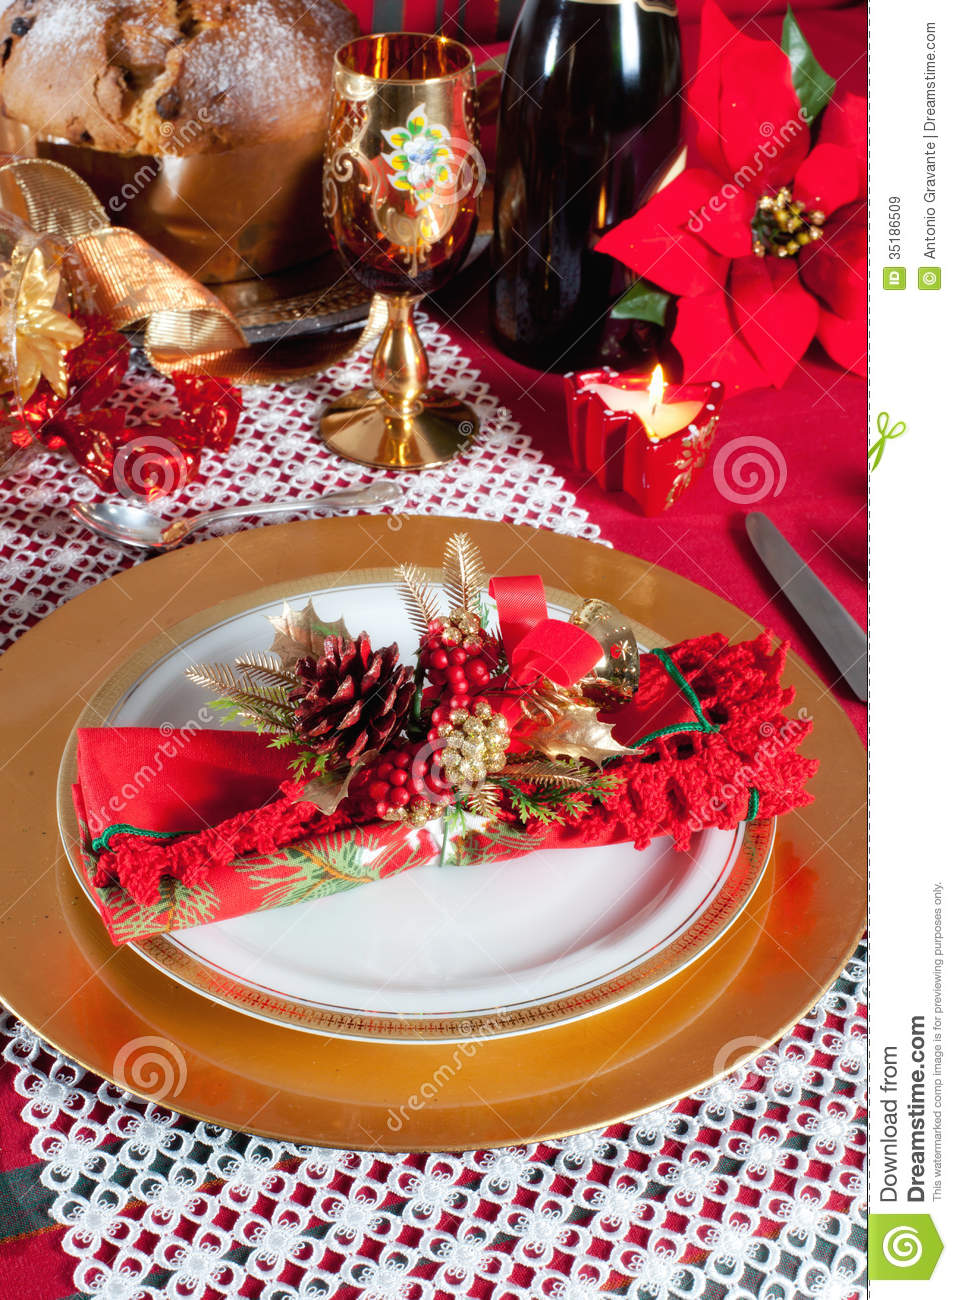 Decorated Christmas Dinner Table Setting Stock Image